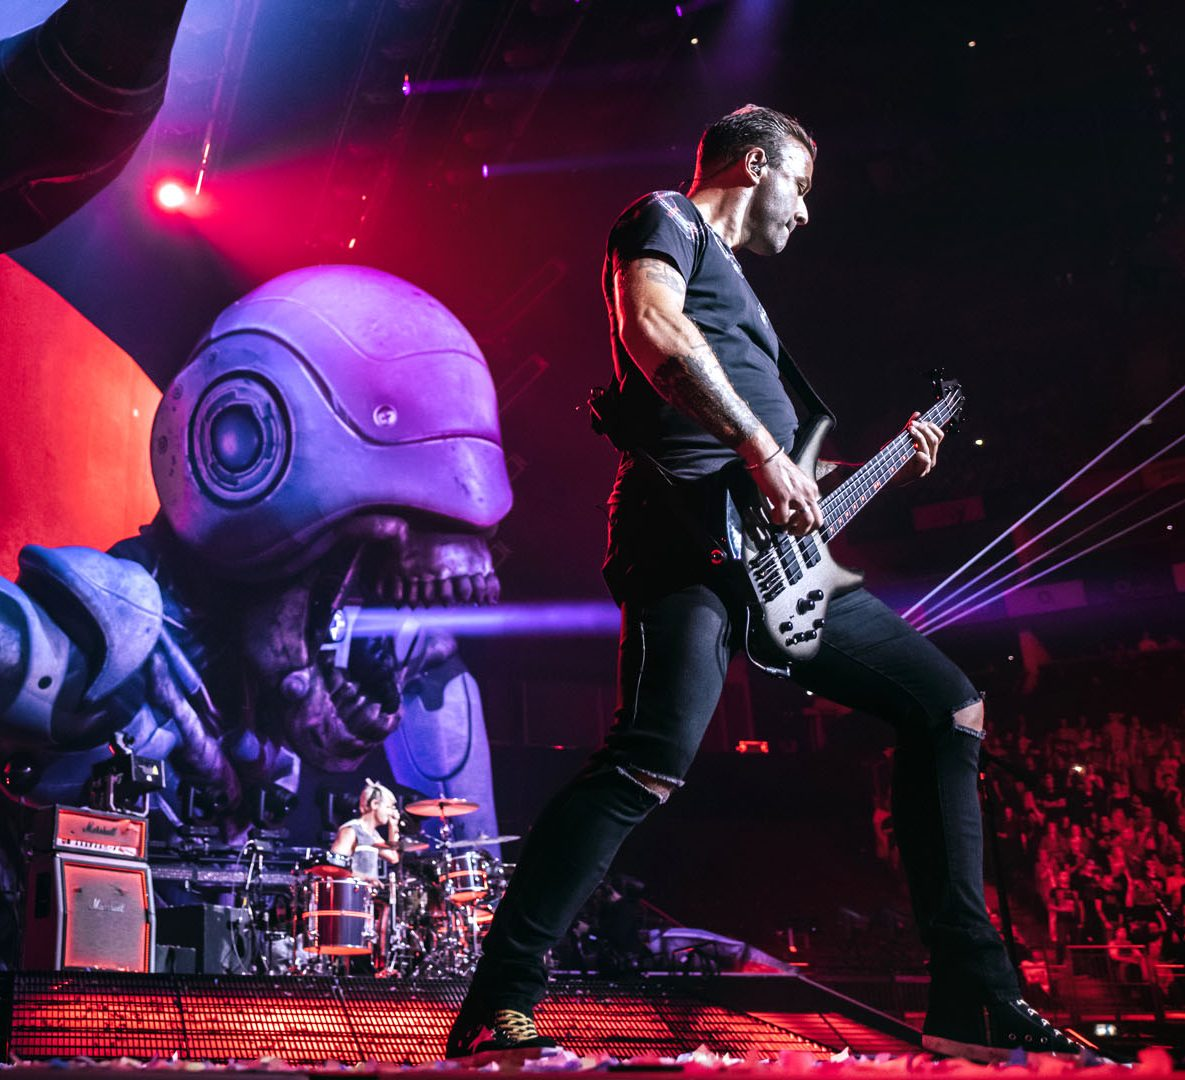 Muse performing live